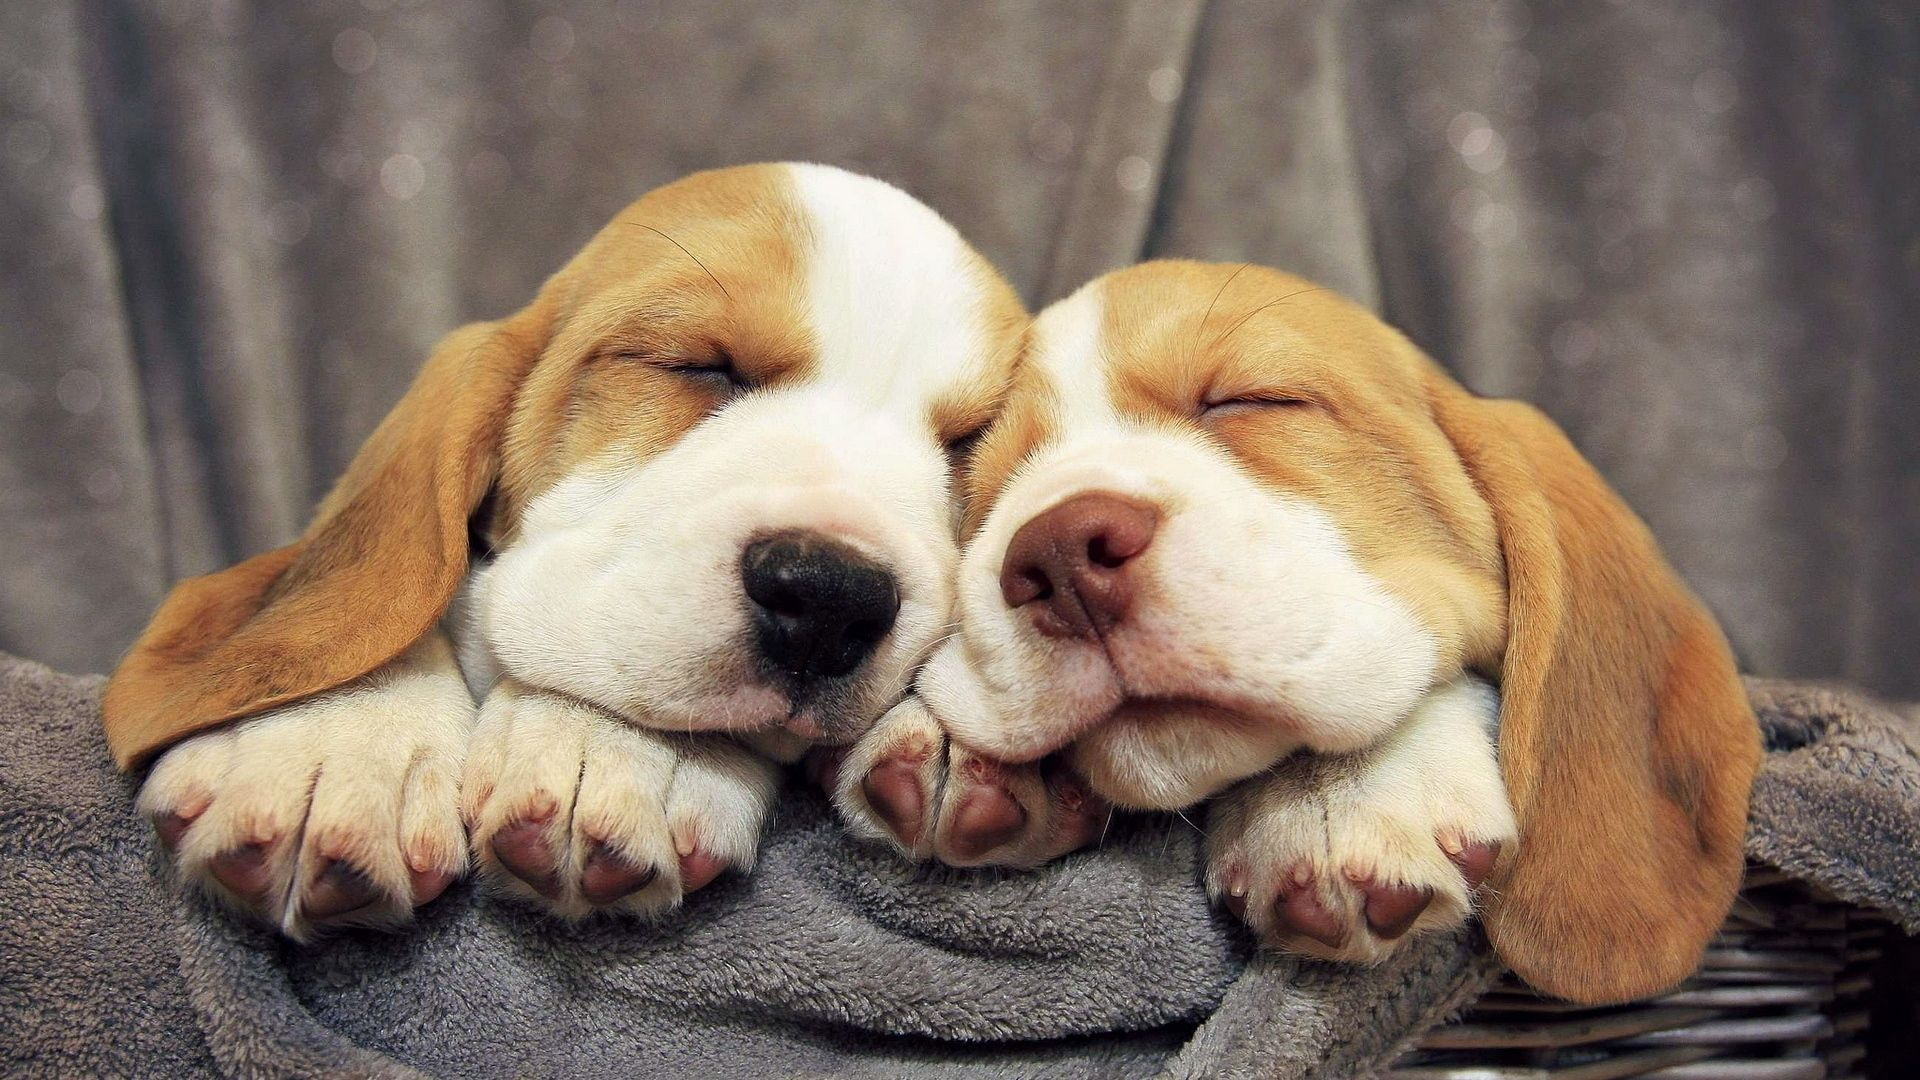 beagles, puppies, dogs - http://www.wallpapers4u.org/beagles-puppies-dogs/